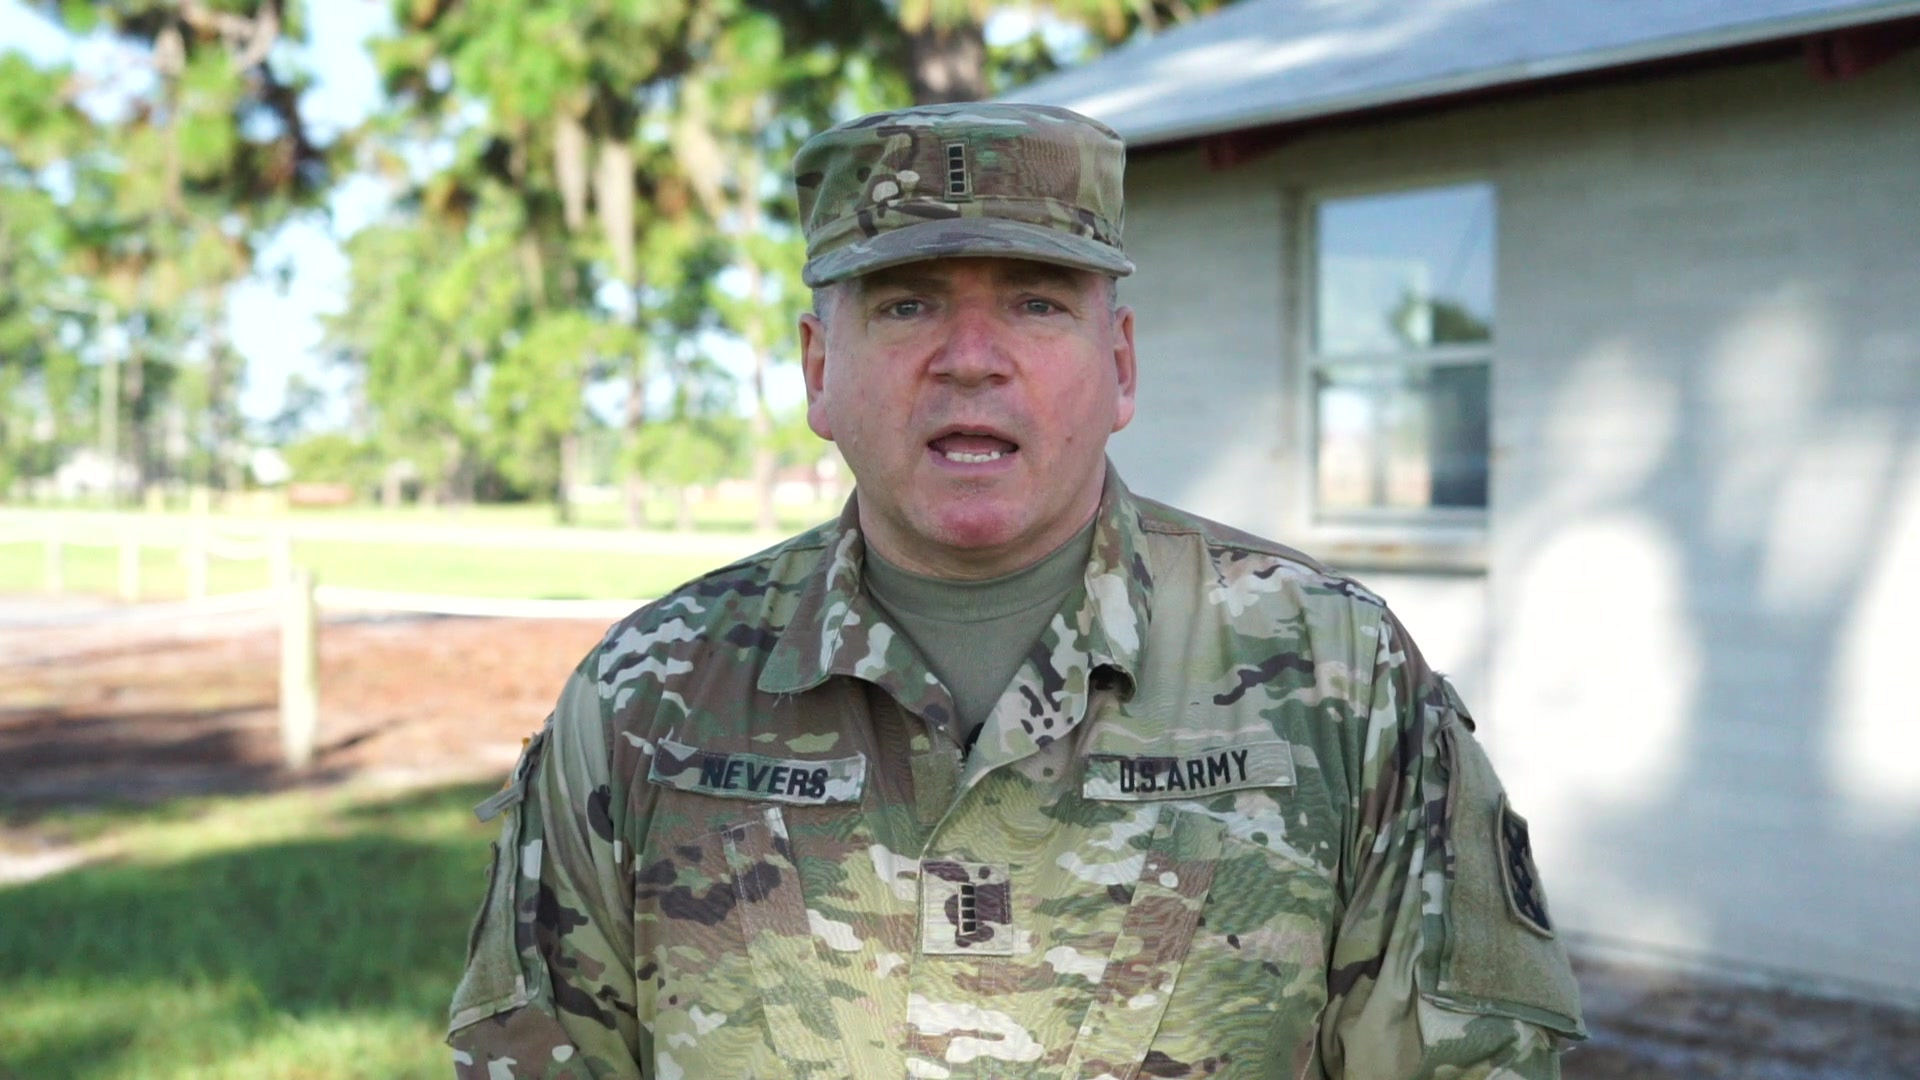 Chief Warrant Officer 4 Ronald Nevers is an Army Reserve Soldier assigned to the 143d Sustainment Command (Expeditionary) serving as the Command Chief Warrant Officer (CCWO) in Orlando, Fla. In this interview, Nevers shares his role as the CCWO. (U.S. Army video by Spc. Leon Orange)